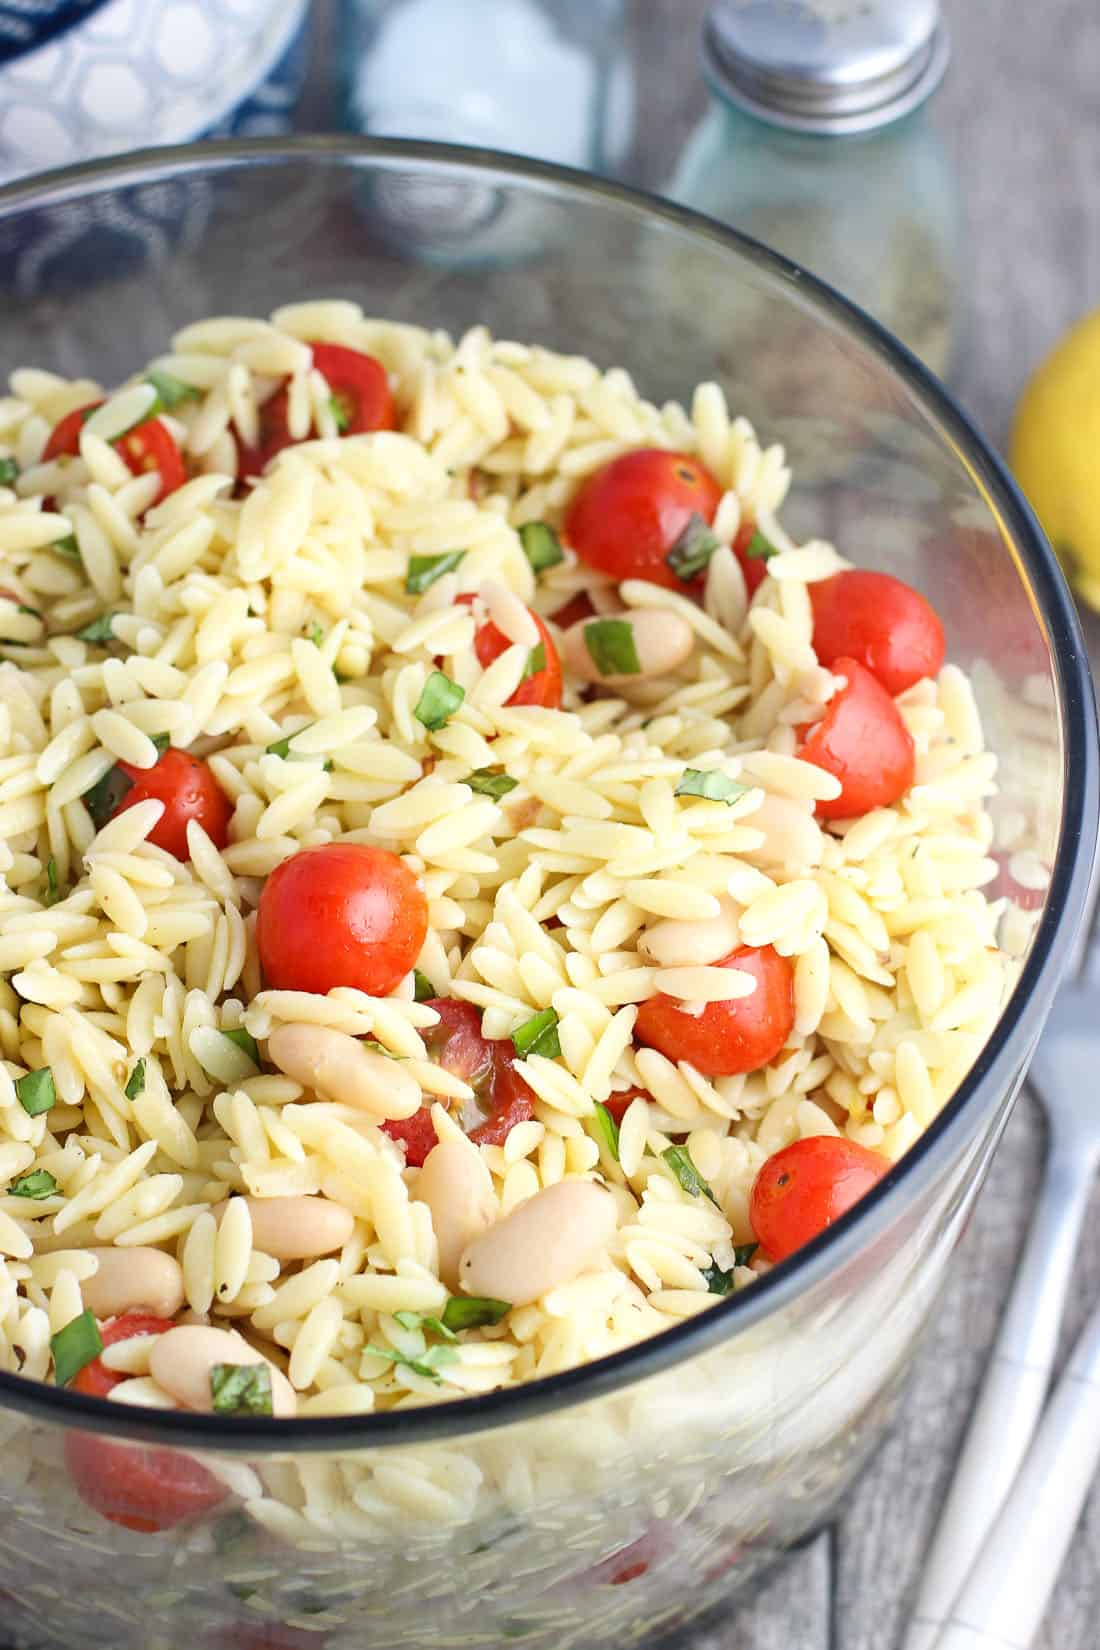 This lemon orzo pasta salad is just the thing for spring and summer! Loaded up with fresh basil, chopped sliced almonds, white beans, and lemon juice, this pasta salad makes a delicious side dish that will feed a crowd.